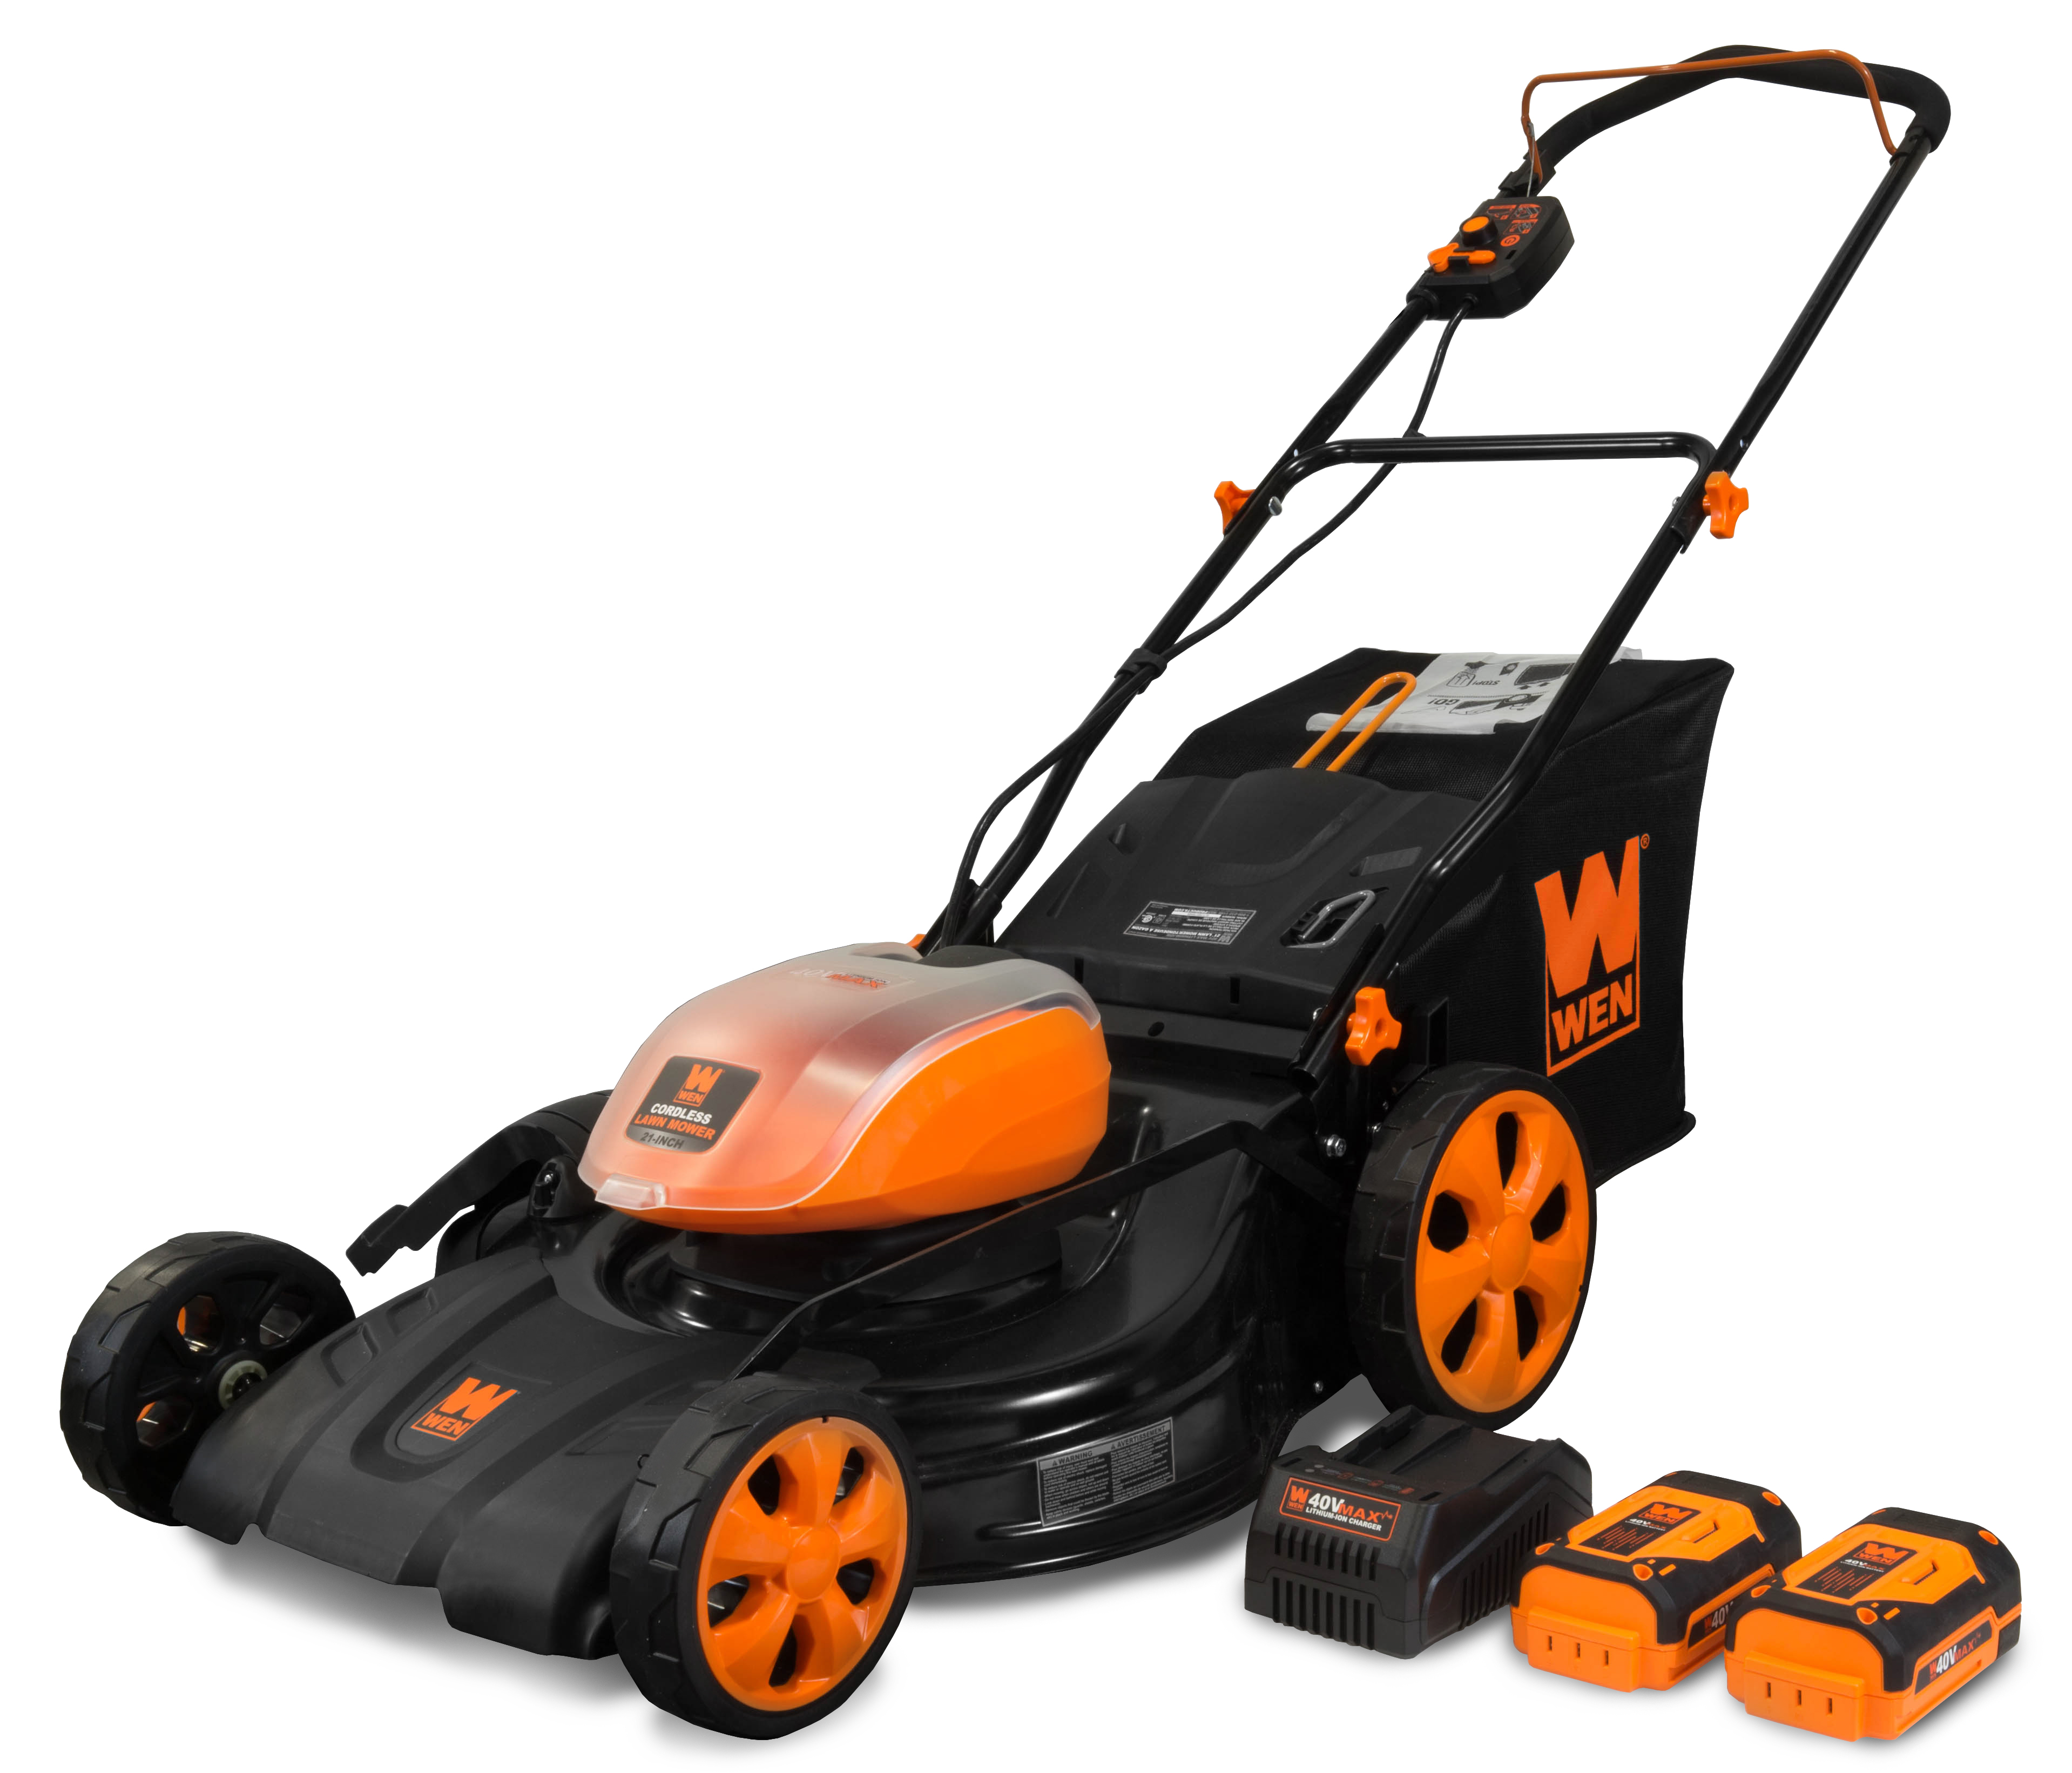 WEN 40V Max Lithium Ion 21-Inch Cordless 3-in-1 Lawn Mower with Two Batteries, 16-Gallon Bag and Charger by WEN